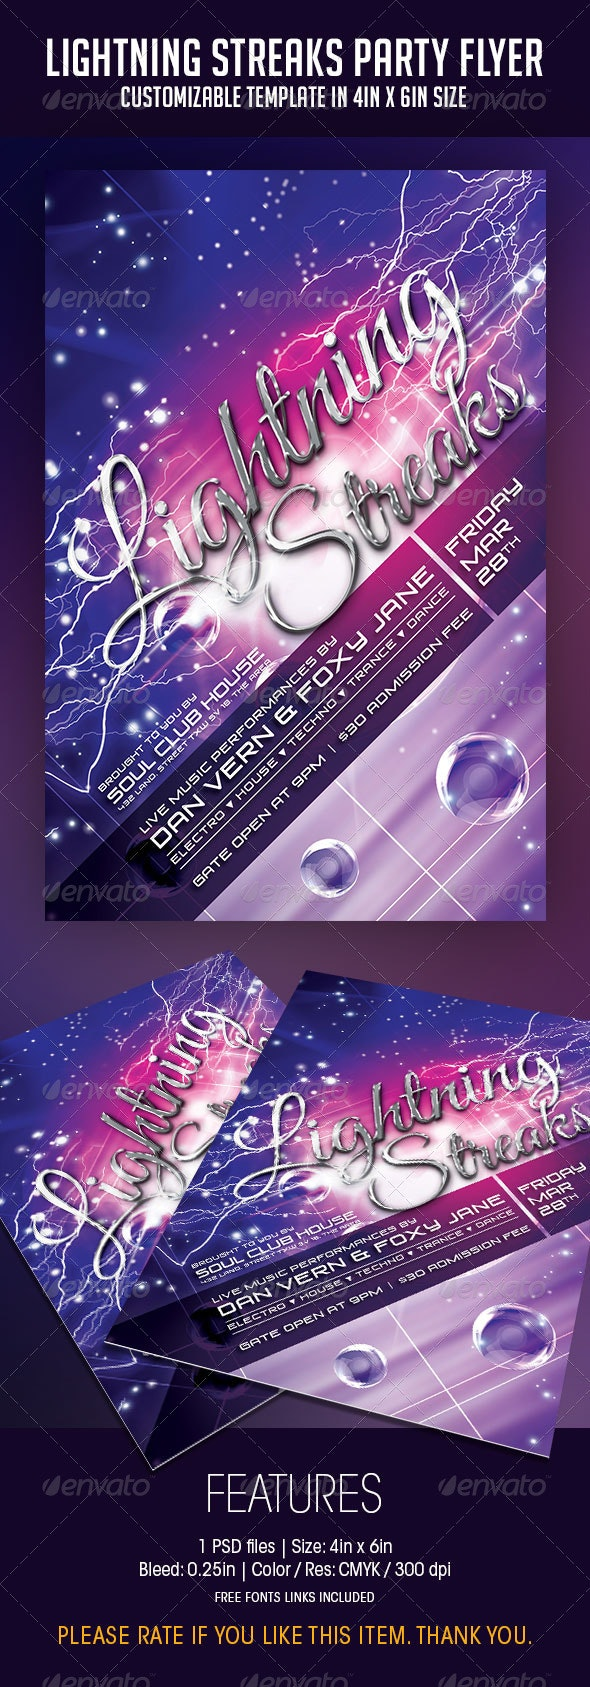 Lightning Streaks Party Flyer - Clubs & Parties Events